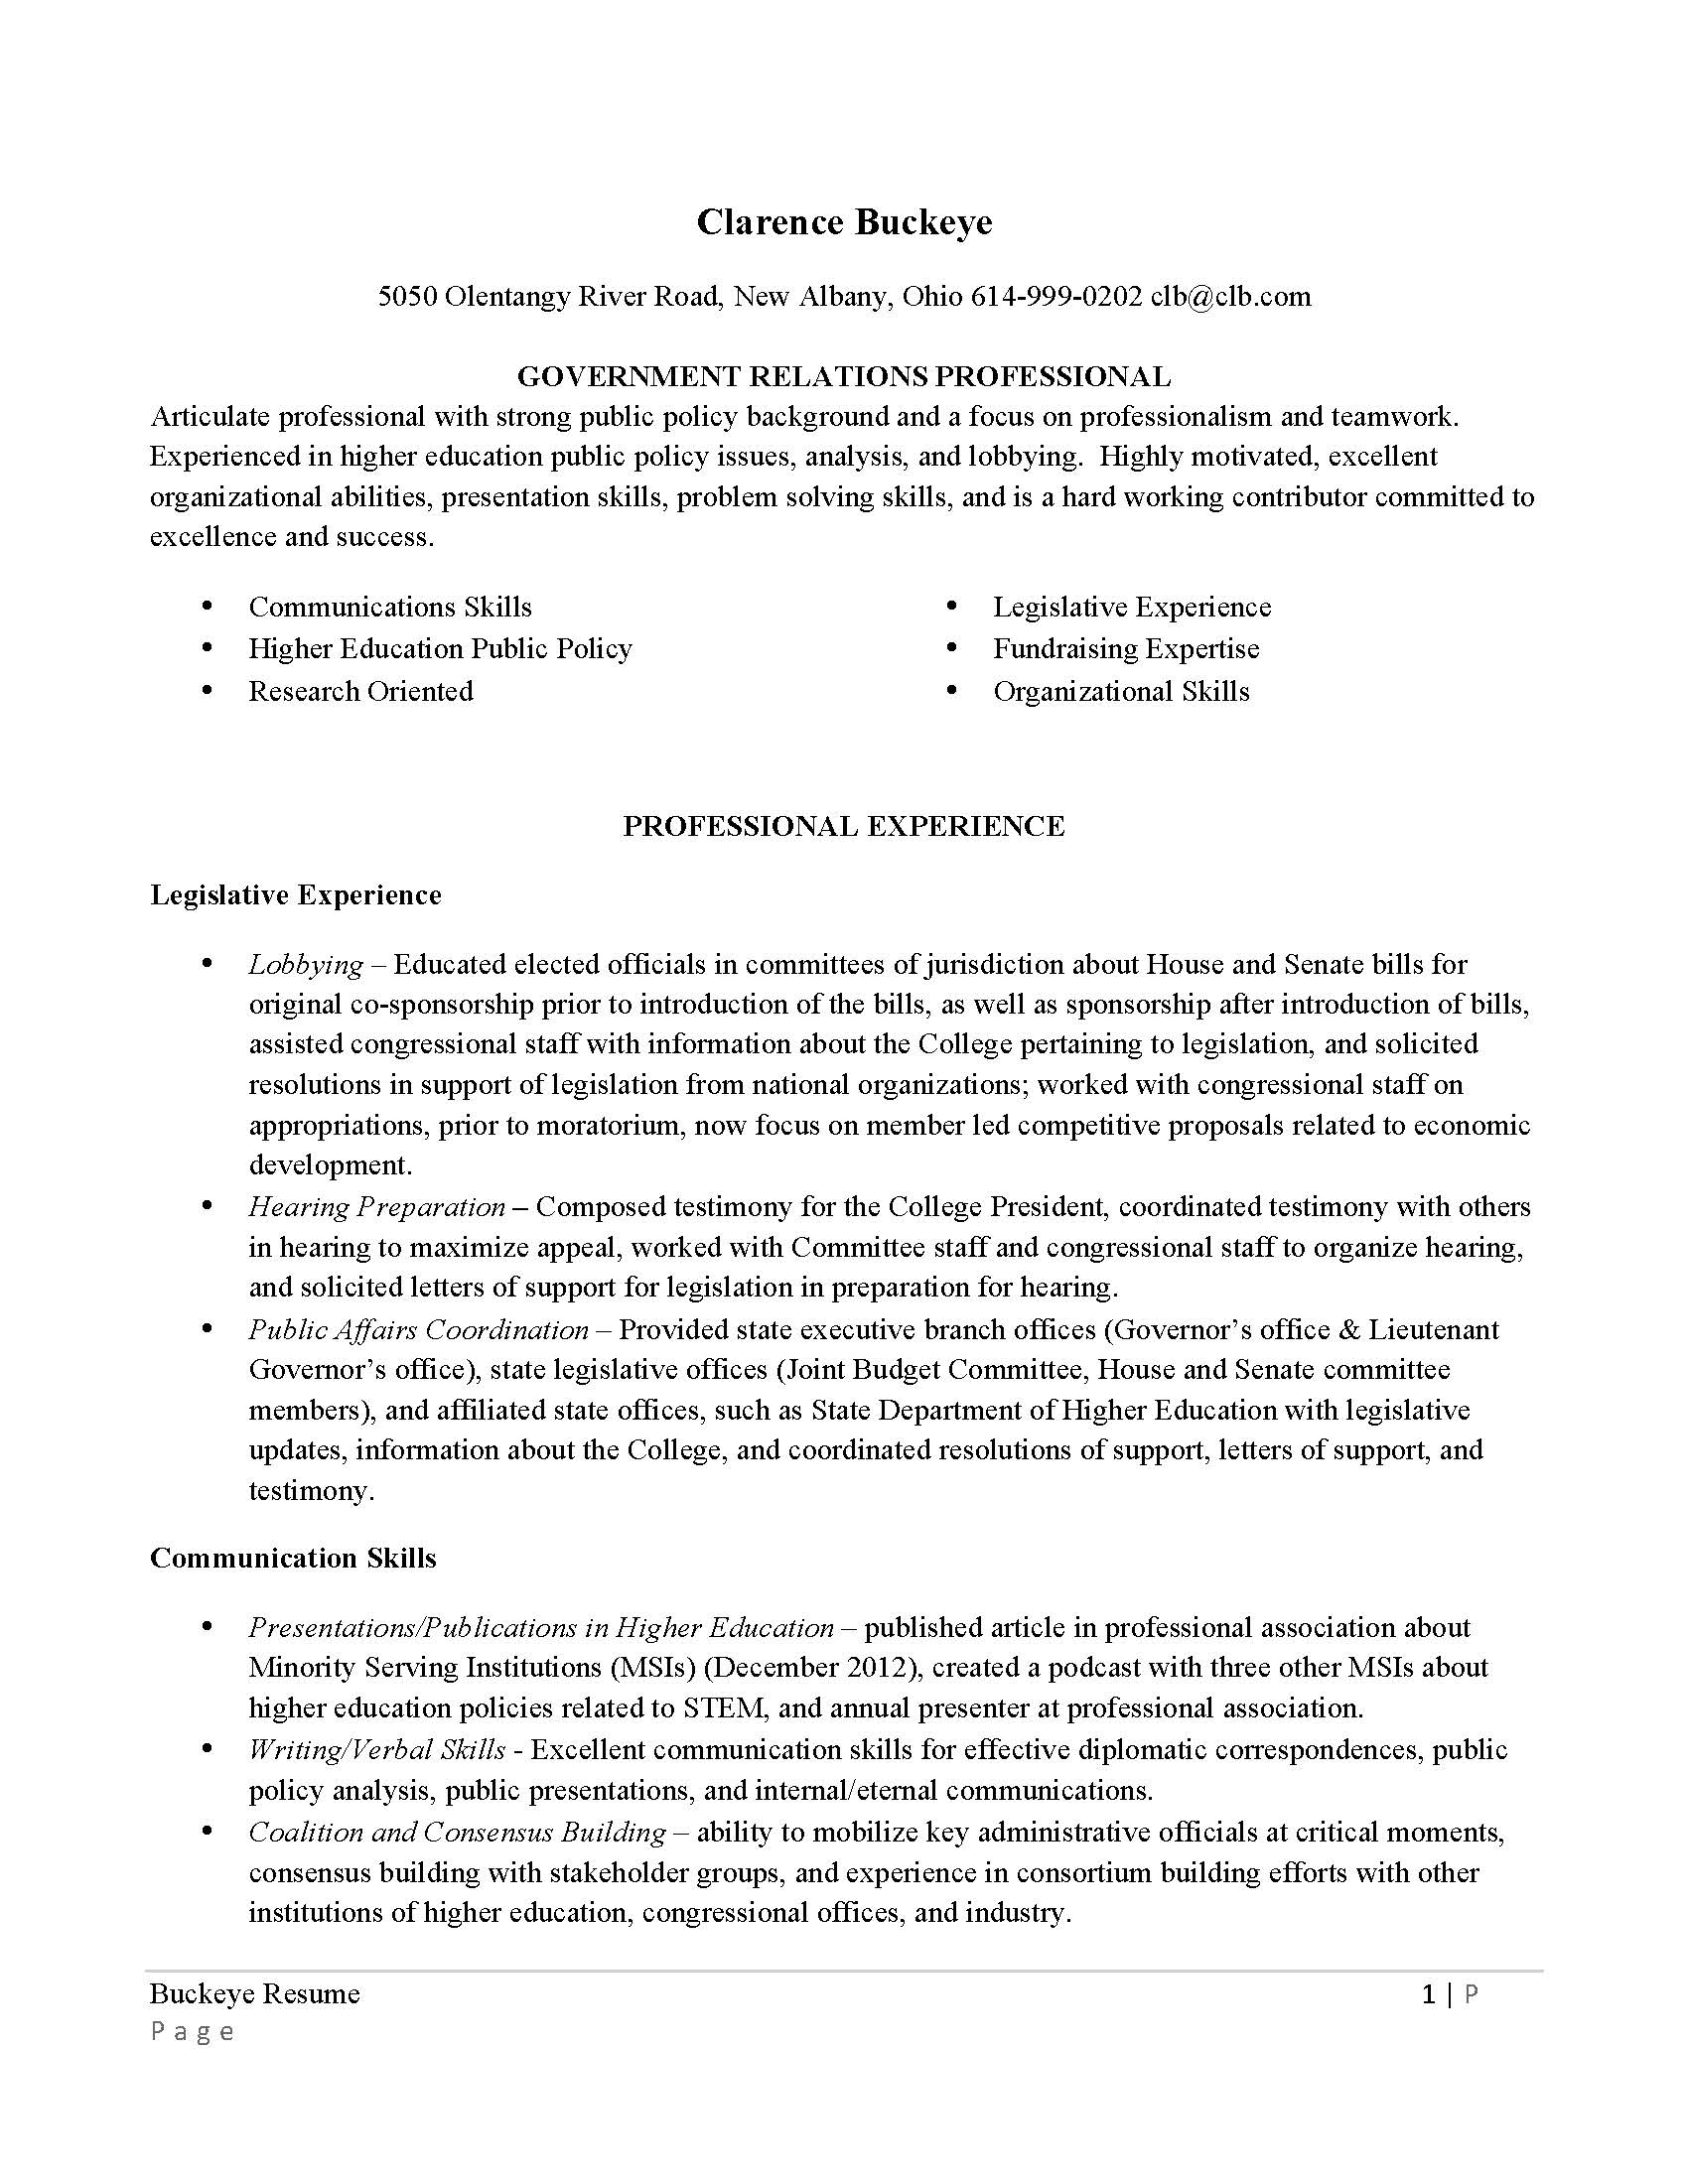 Resumes and cover letters - The Ohio State University Alumni ...